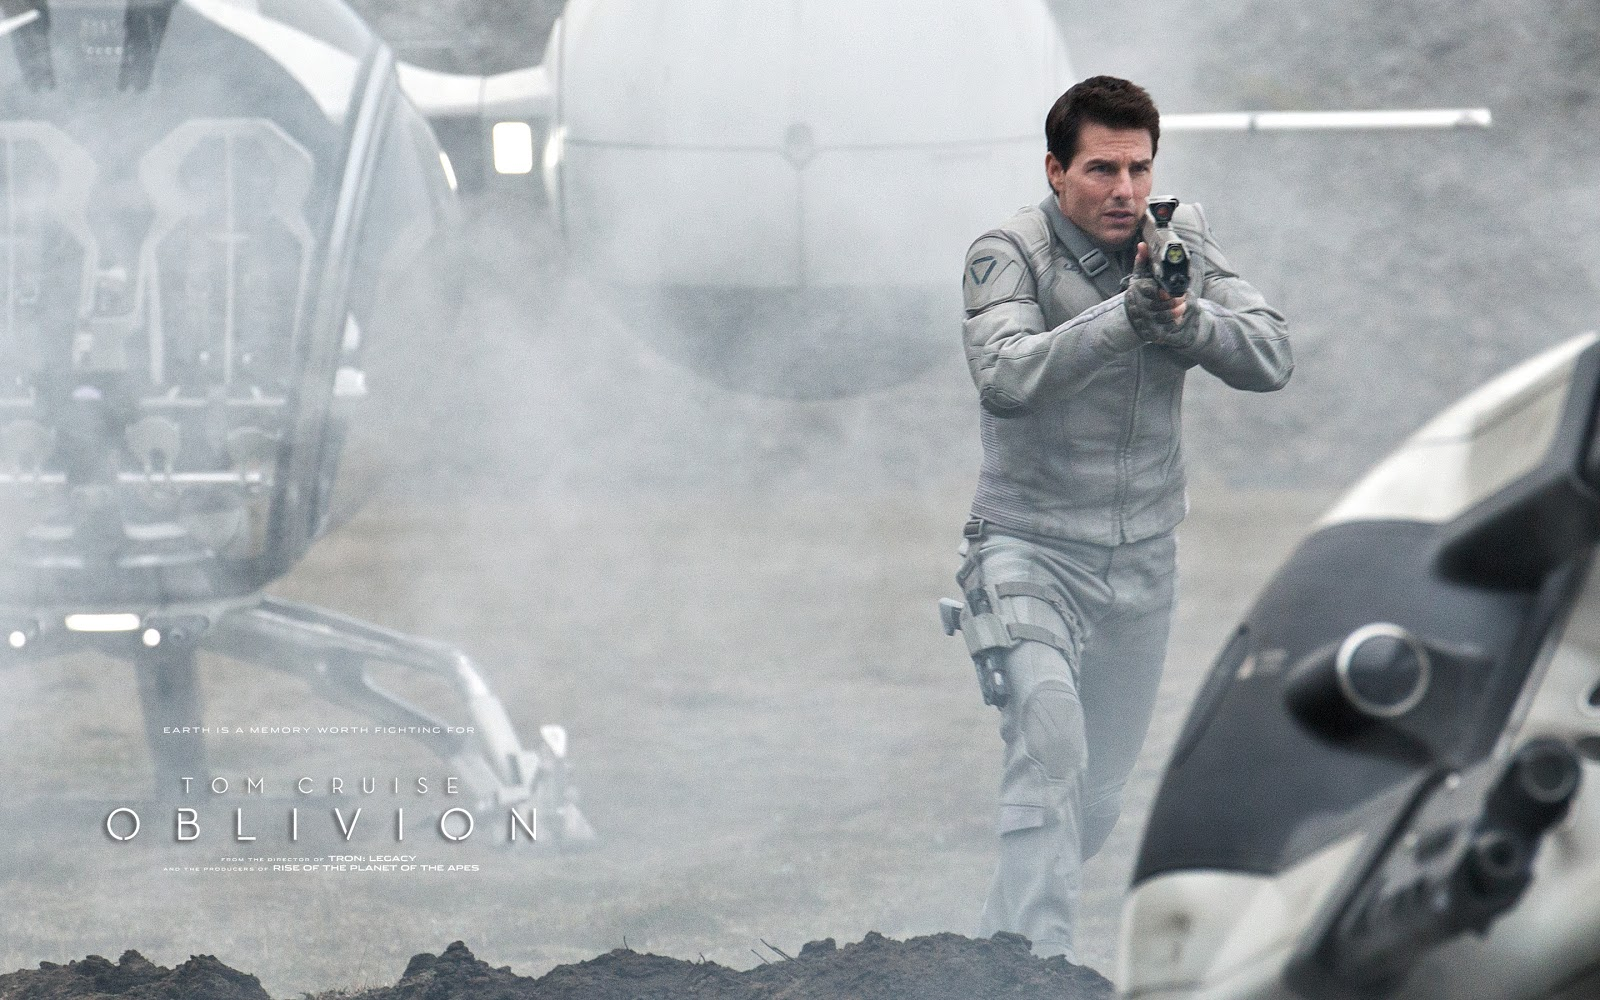 Tom Cruise Quotes 90 Wallpapers: Oblivious Hollywood And Its New Movie 'Oblivion'